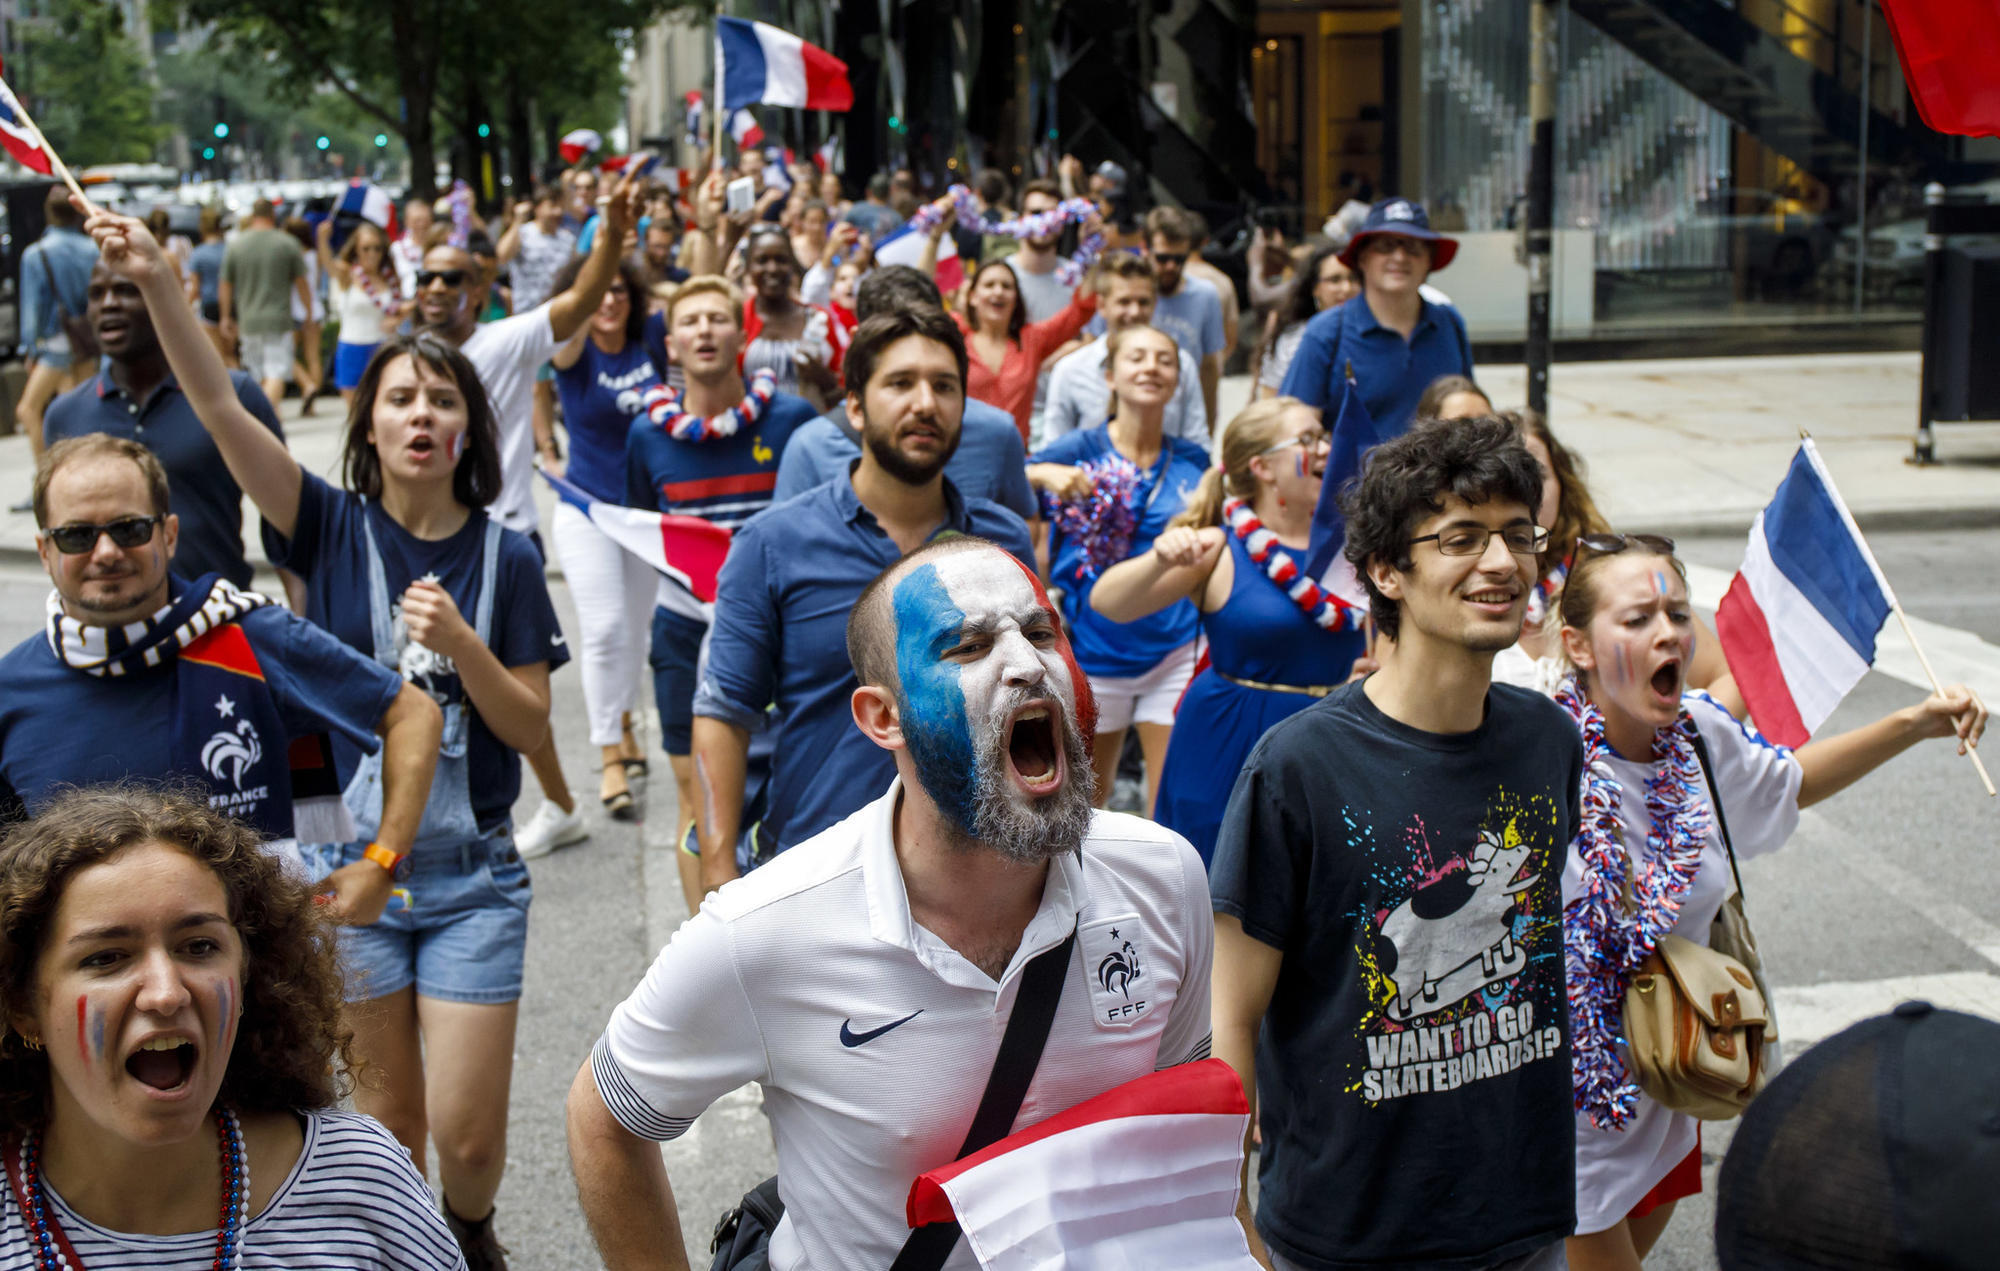 France wins its second World Cup title with 4-2 victory over Croatia